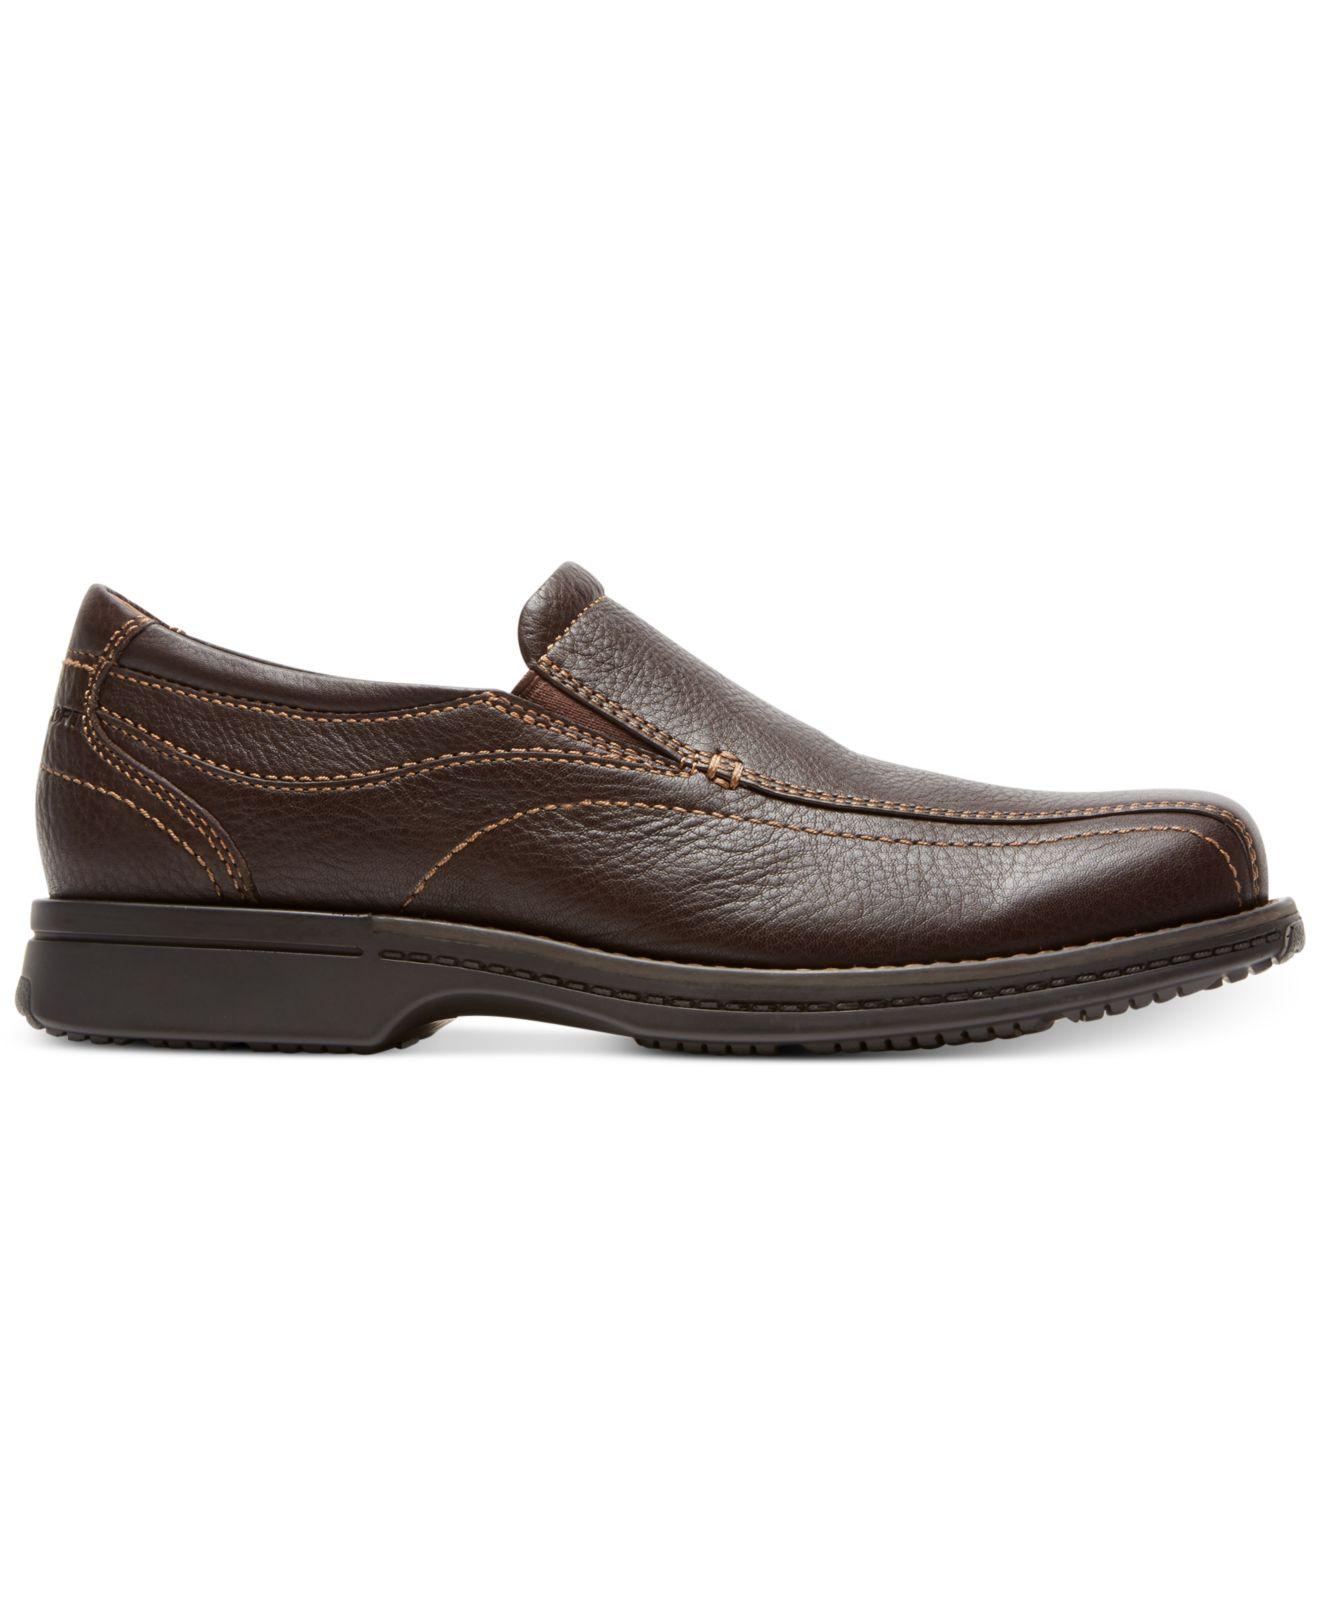 rockport classic revised slip on shoes in brown